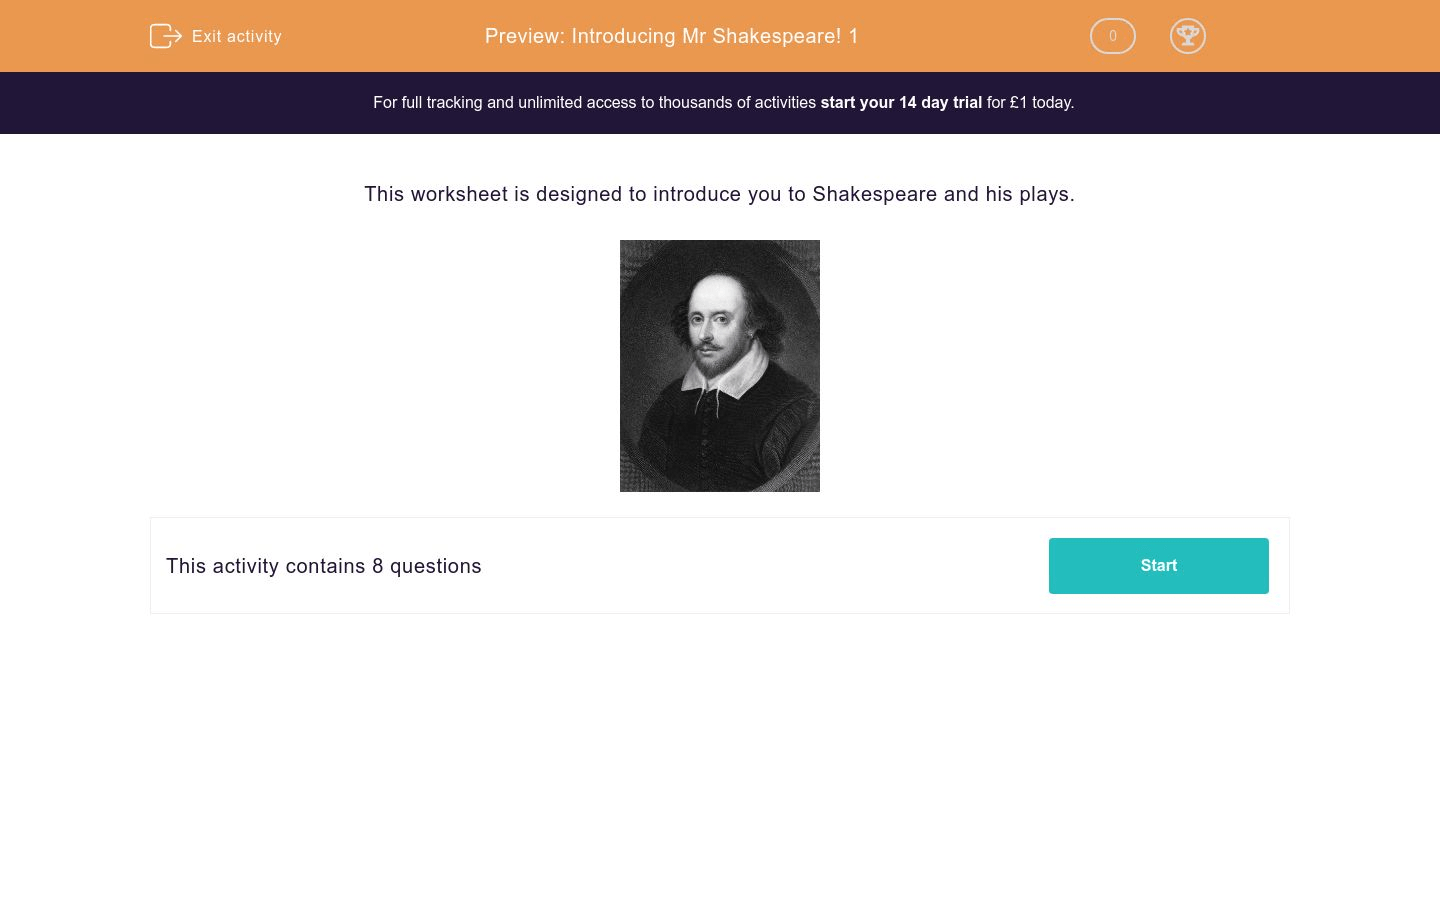 Introducing Mr Shakespeare 1 Worksheet